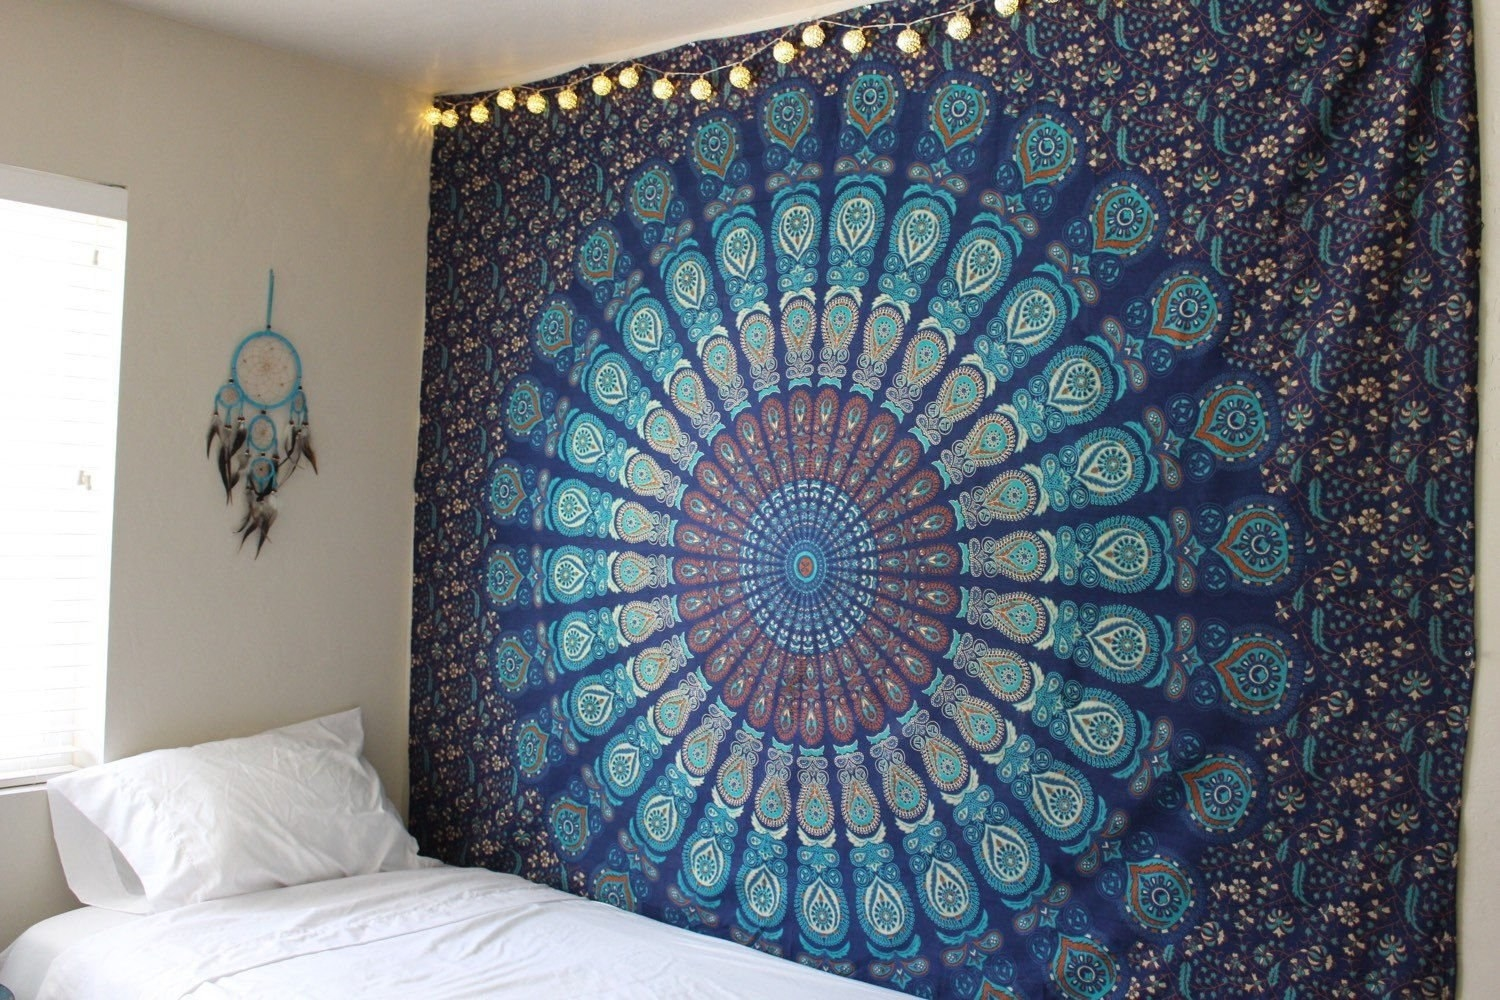 A tapestry hanging beside a bed.